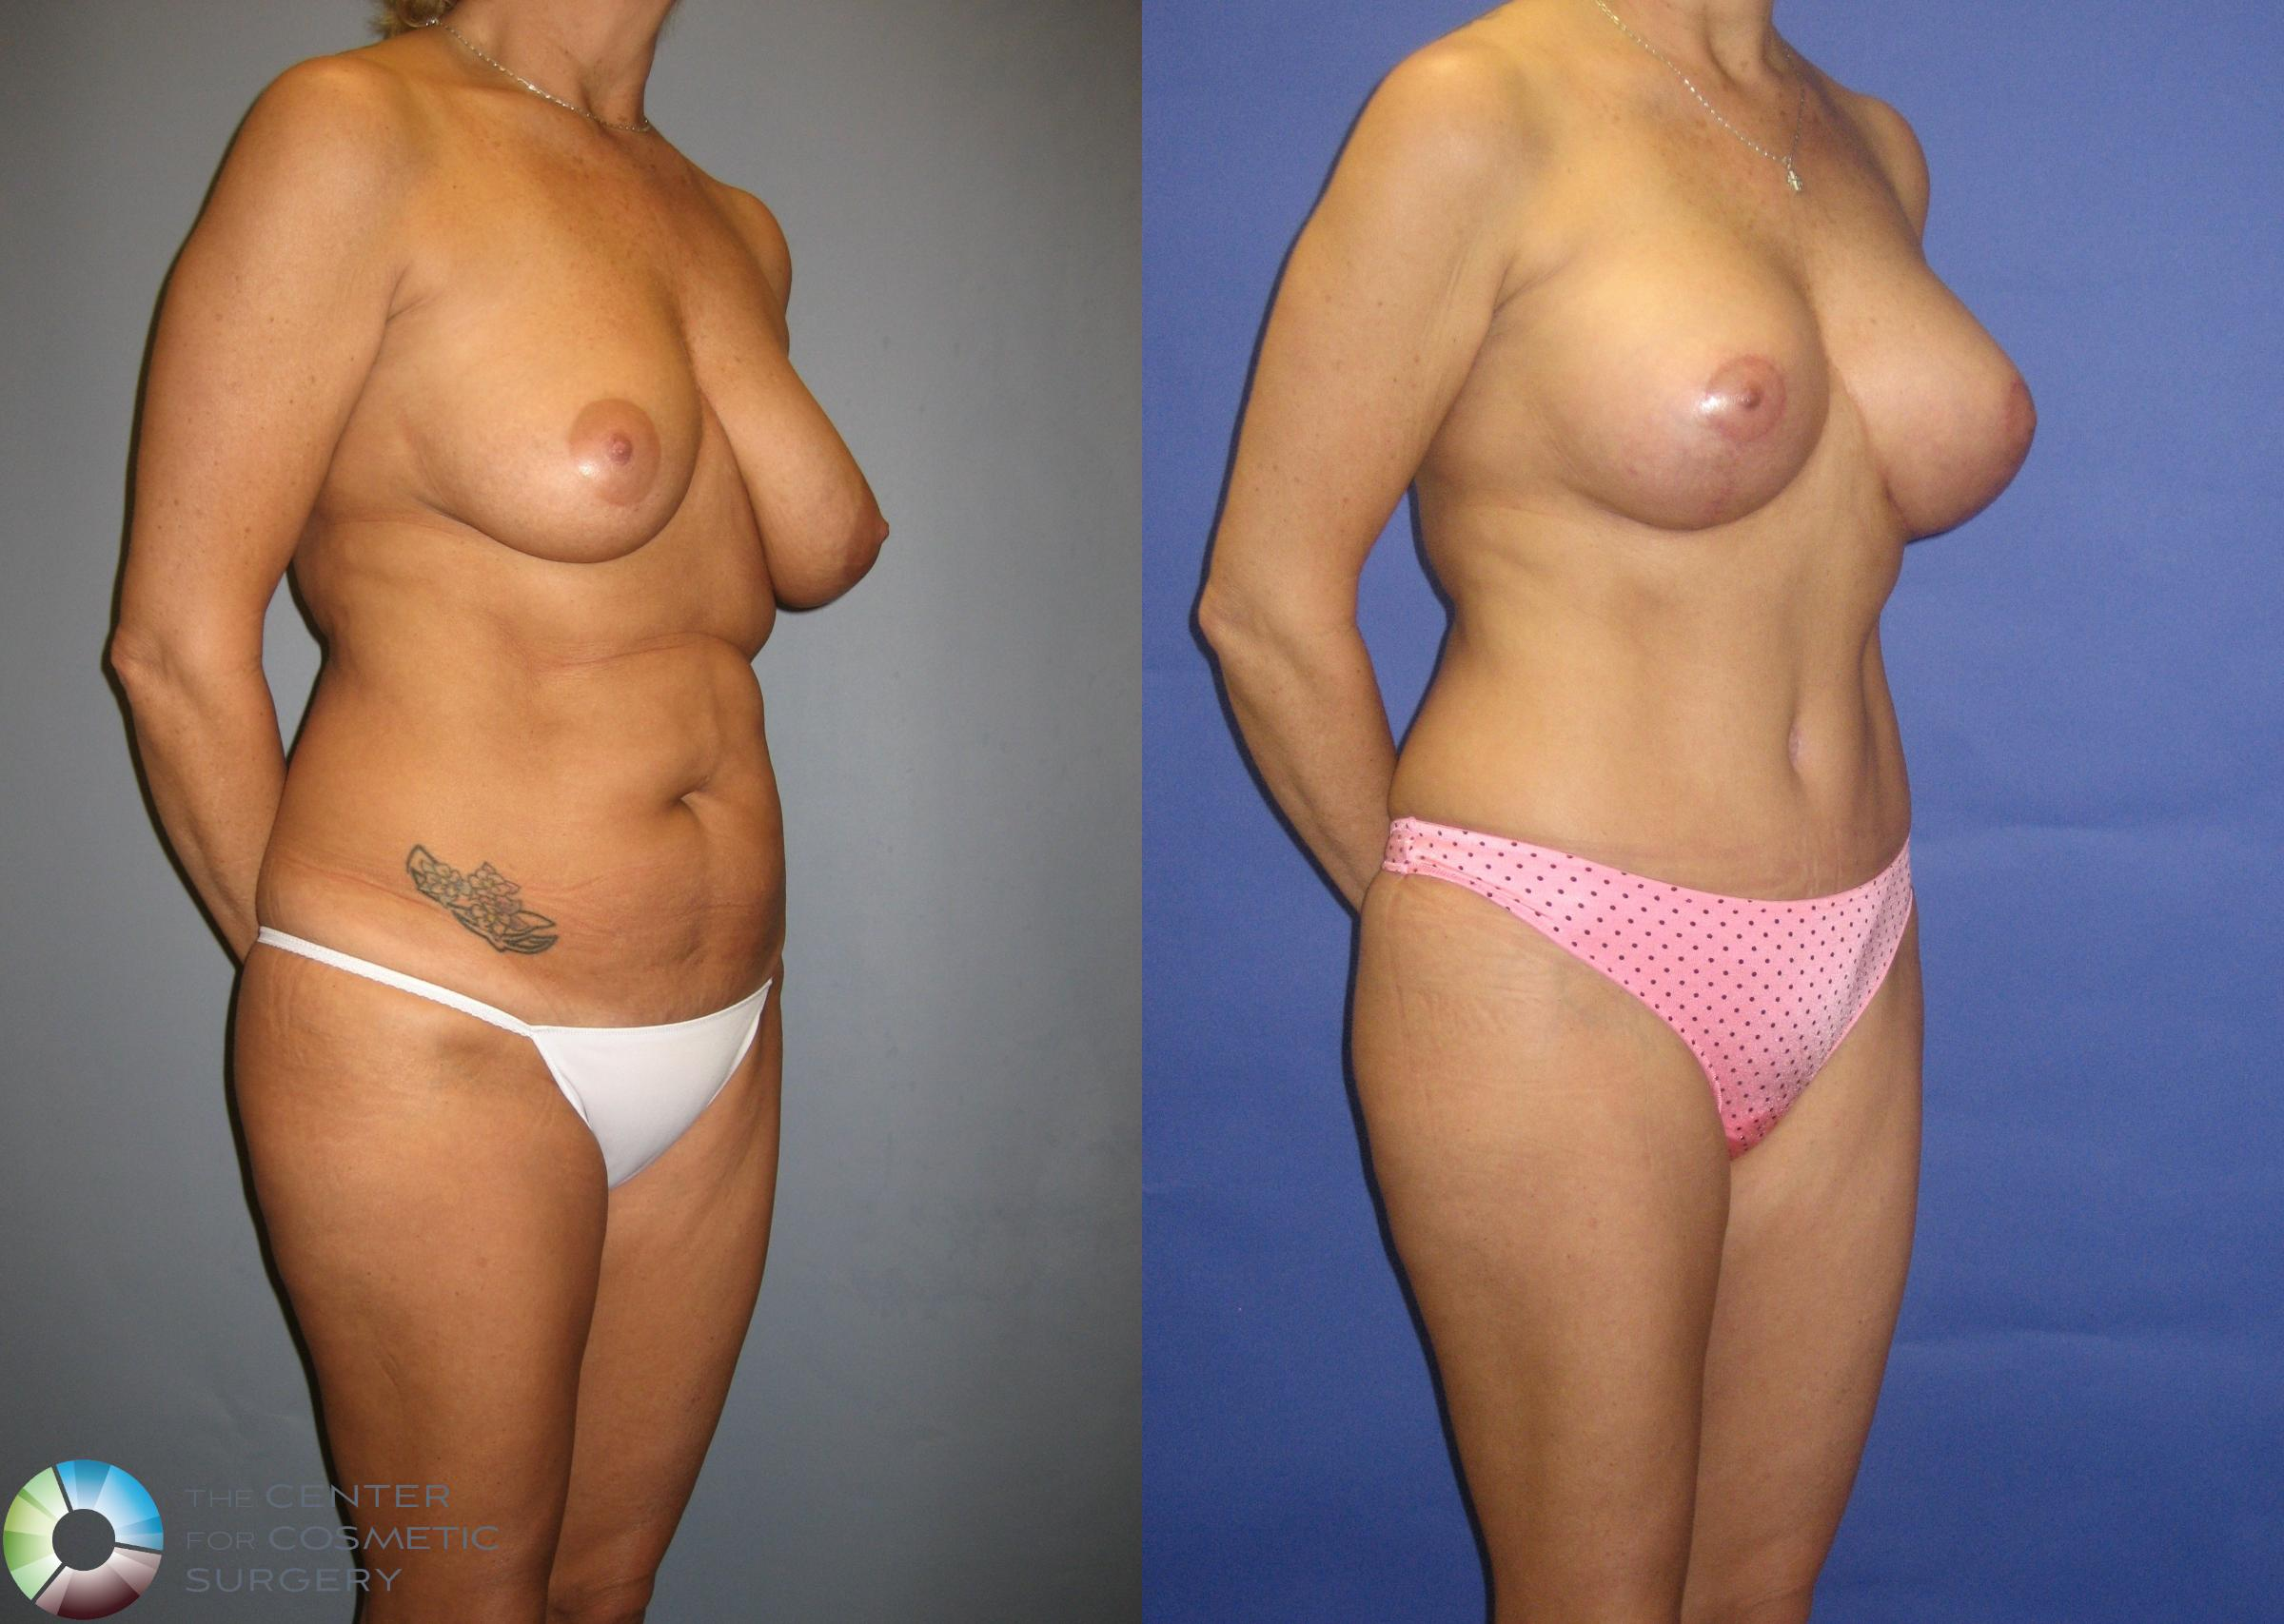 Tummy Tuck Case 305 Before & After View #4 | Golden, CO | The Center for Cosmetic Surgery